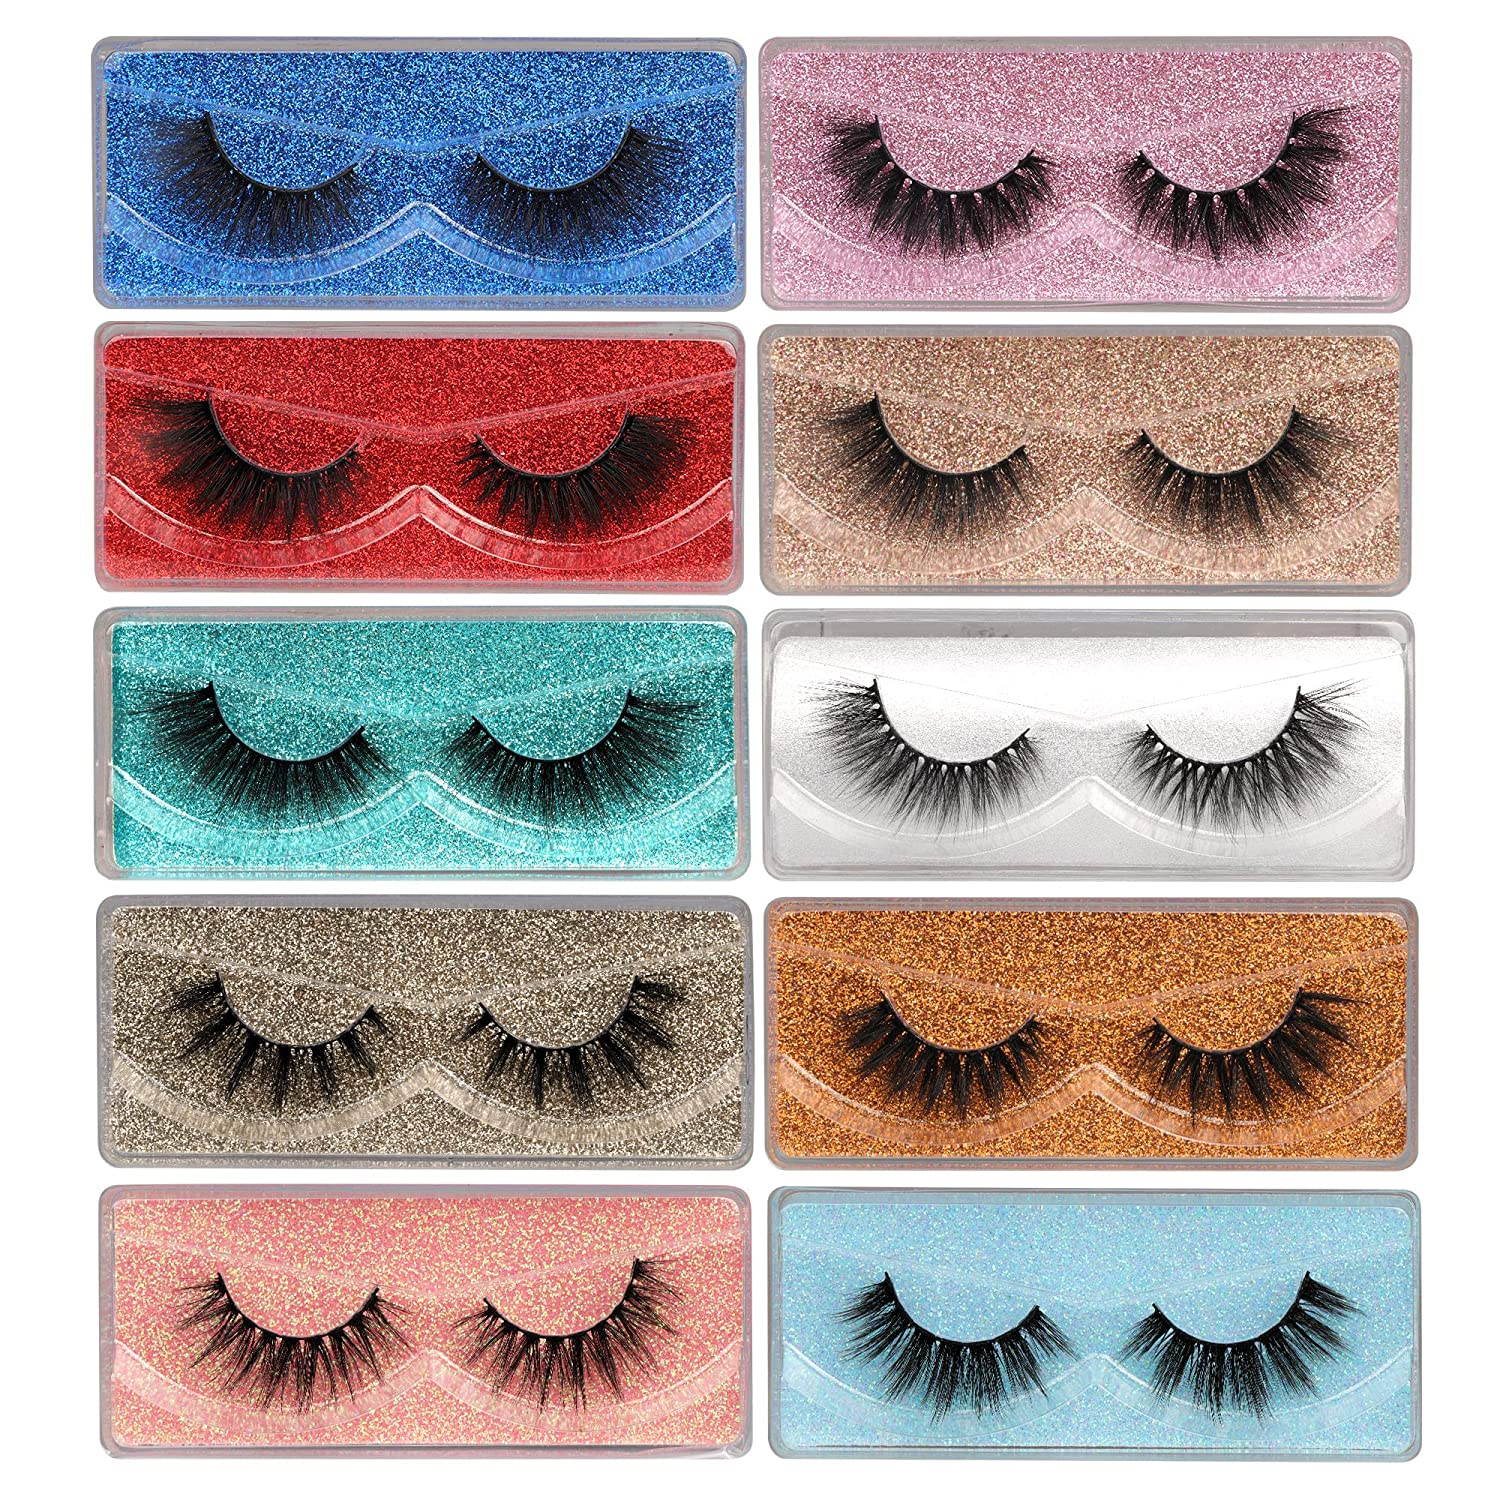 False Eyelashes Wispy 18mm Be super Free shipping / New welcome Natural 3D Mink Pack 10 Faux Lashes P